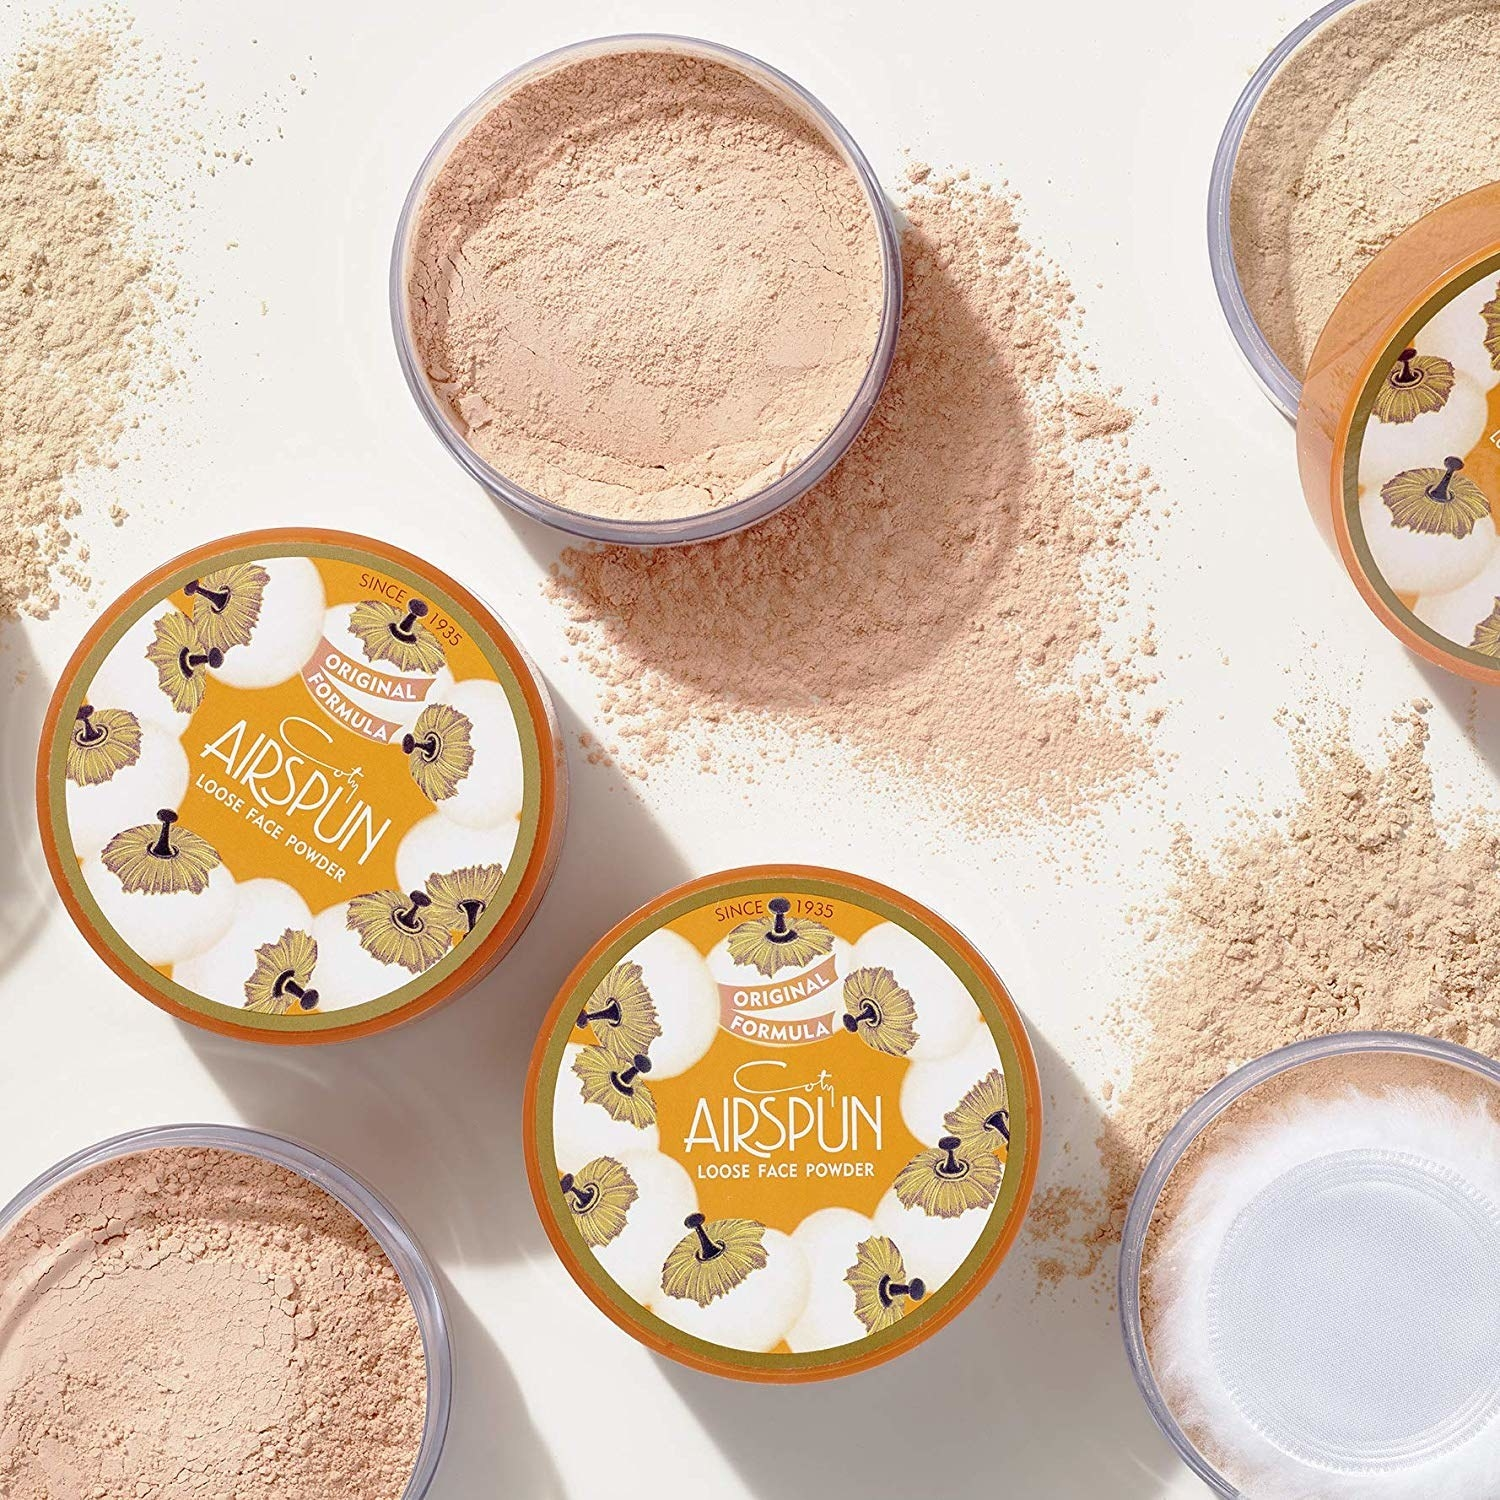 Some scattered containers of the Coty Airspun loose setting powder